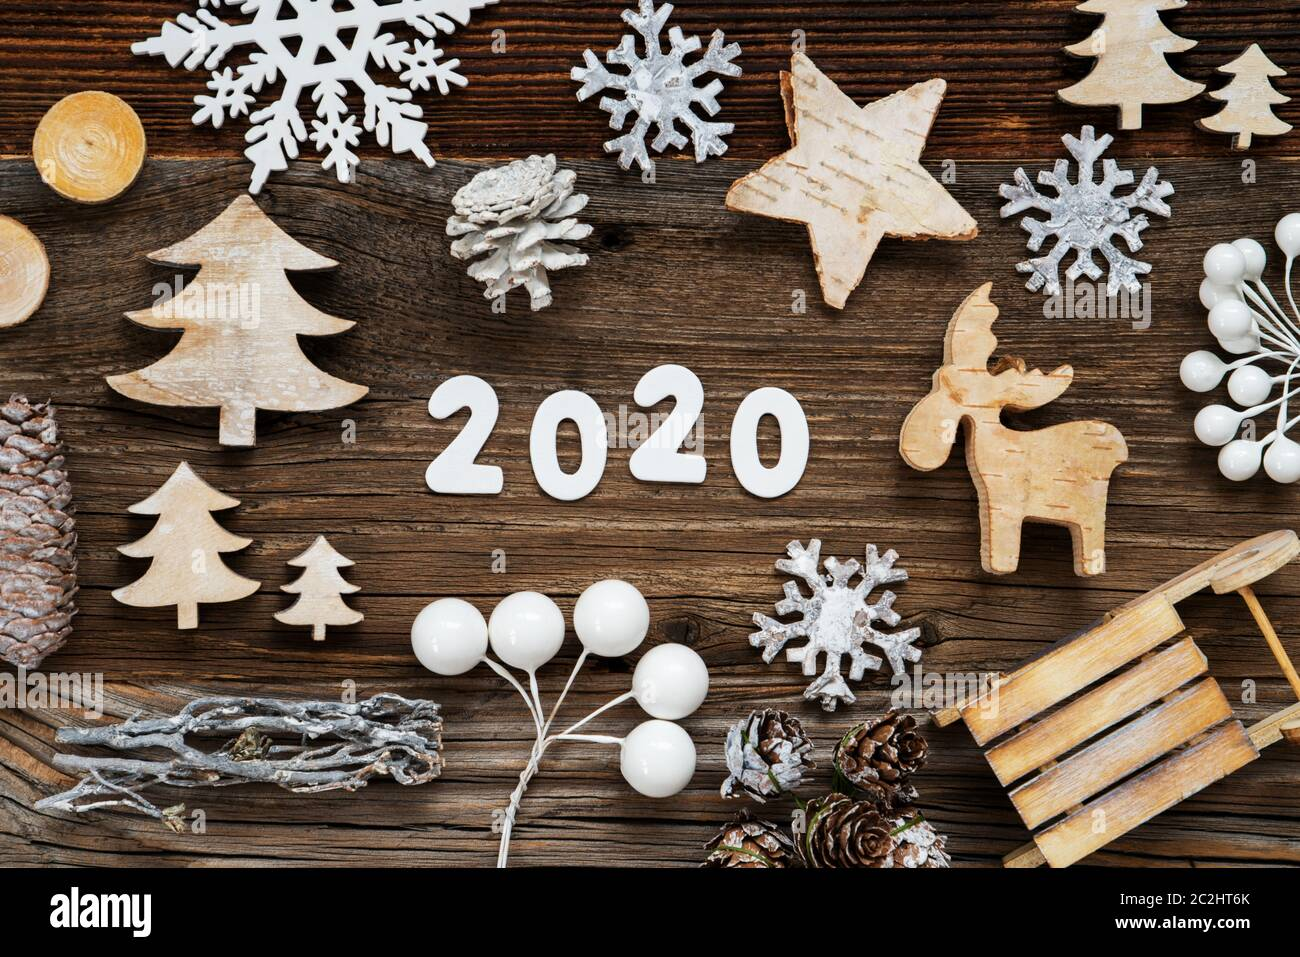 Building Christmas Decorations 2020 White Letters Building The Word 2020. Wooden Christmas Decoration